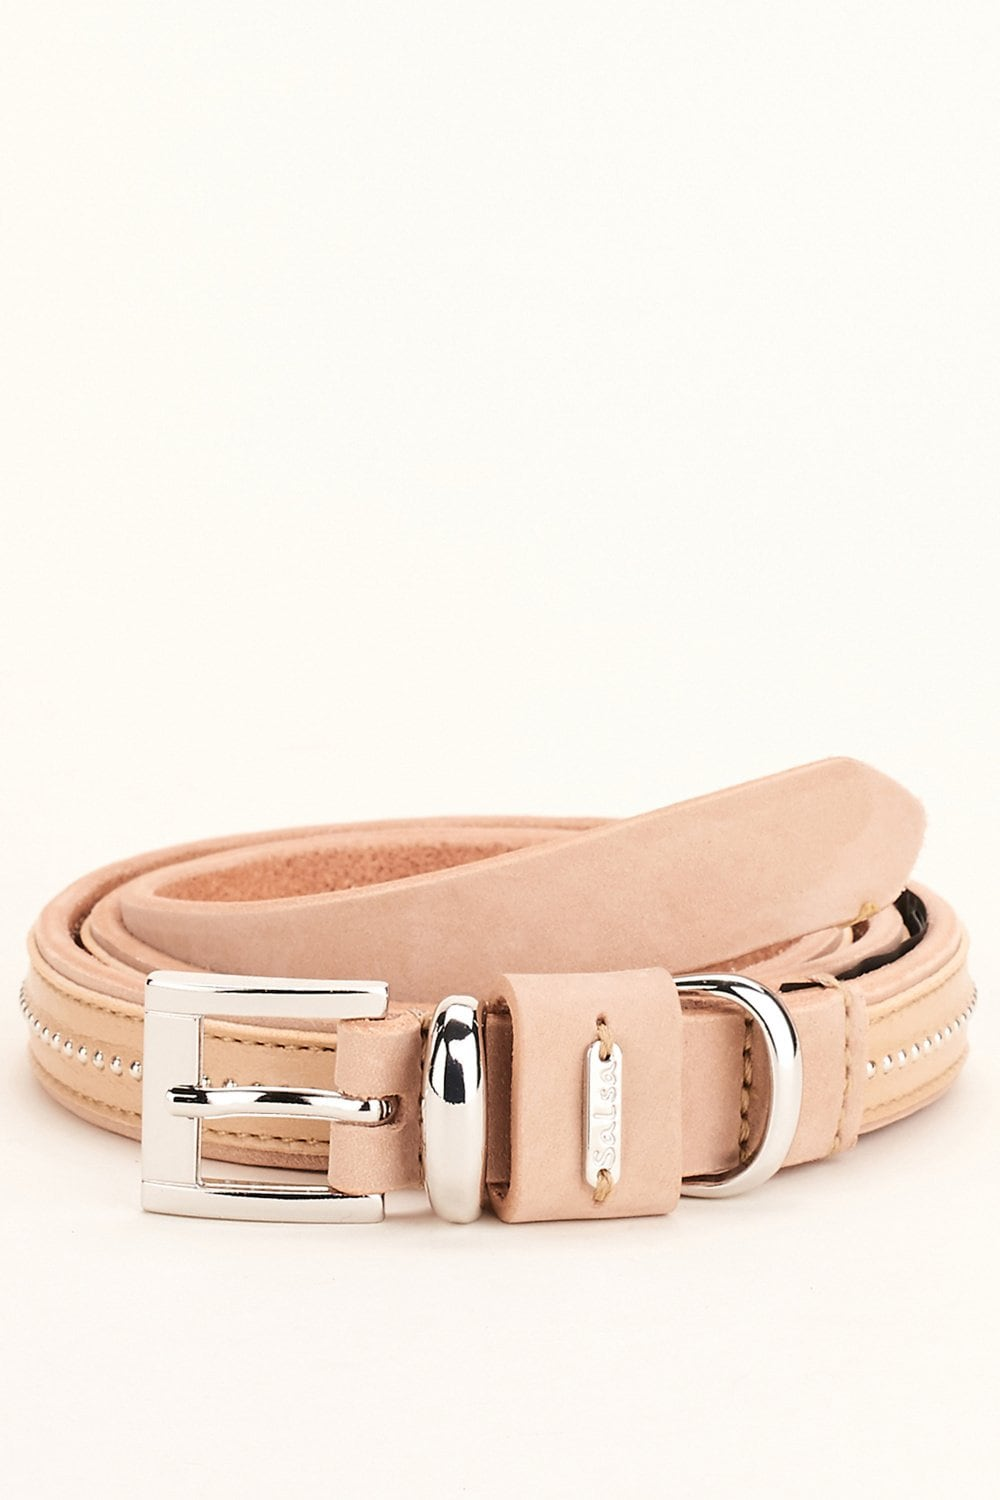 Leather belt with rivets - Salsa